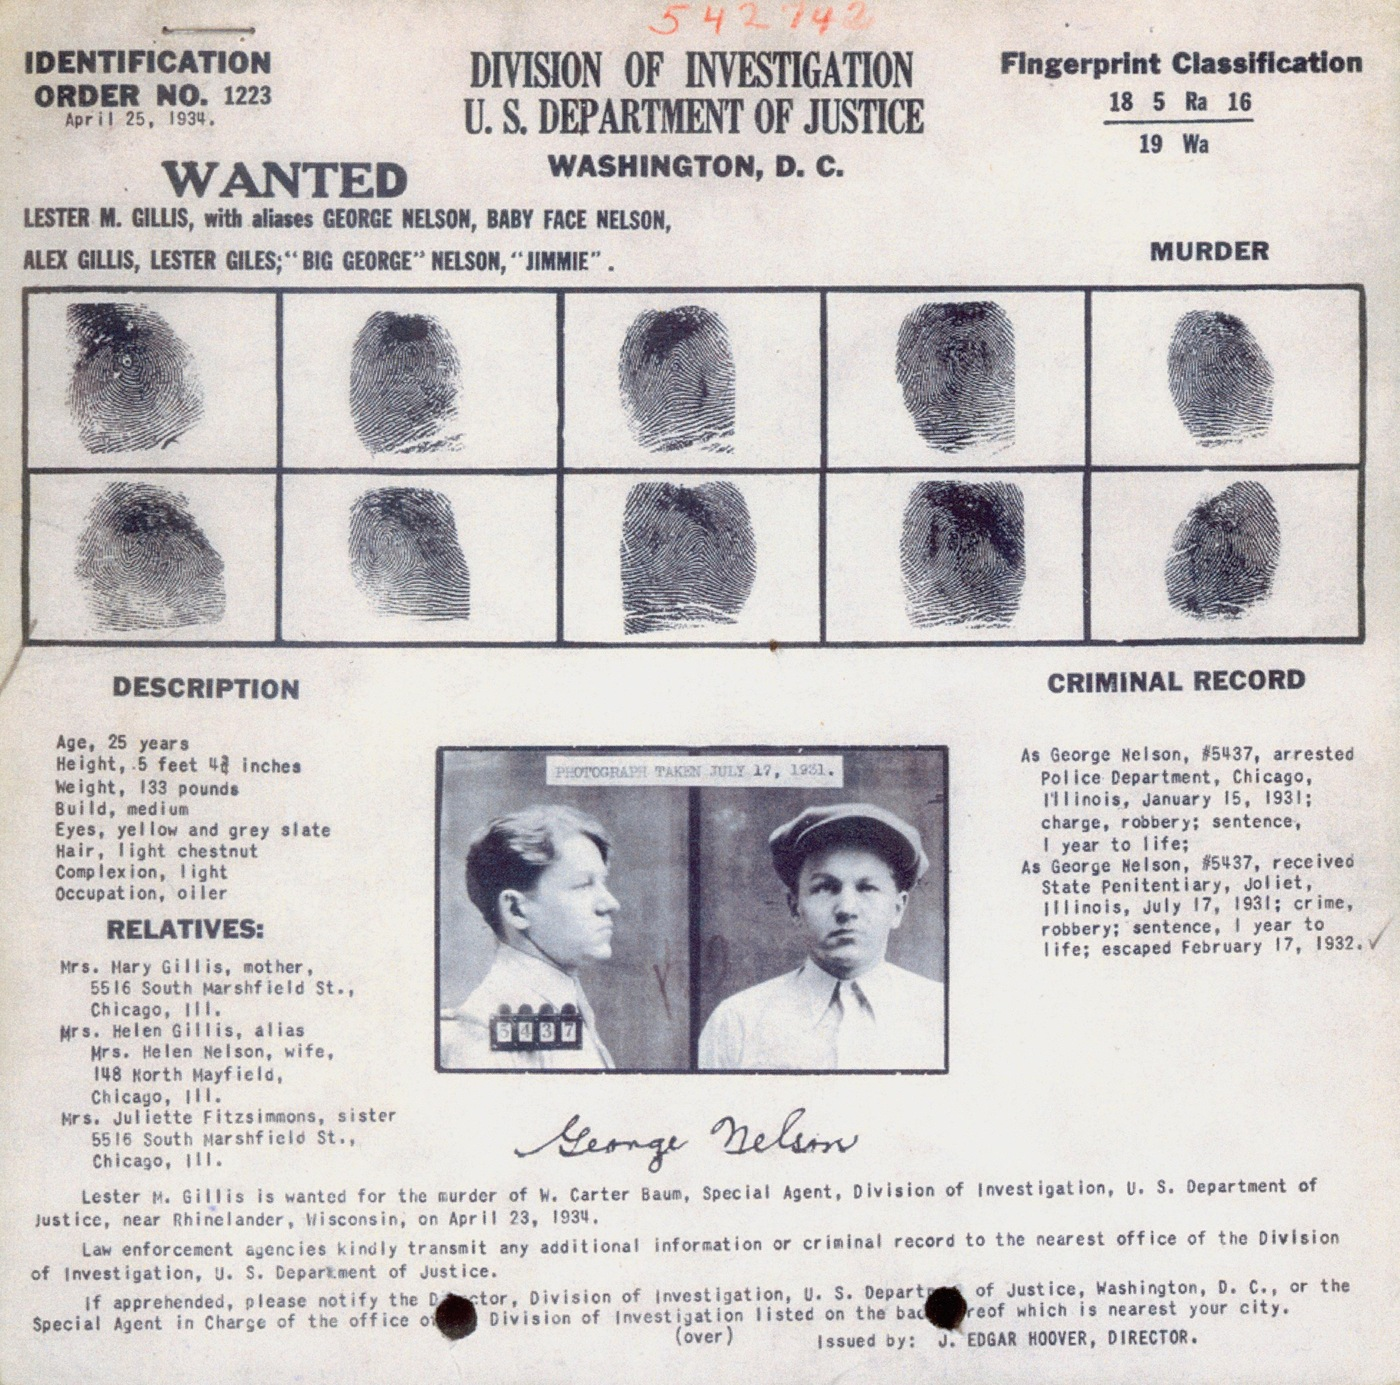 Identification Order no. 1223 of George Nelson, aka Baby Face Nelson, aka Lester Gillis, wanted for the murder of Special Agent W. Carter Baum at Little Bohemia, Wisconsin.